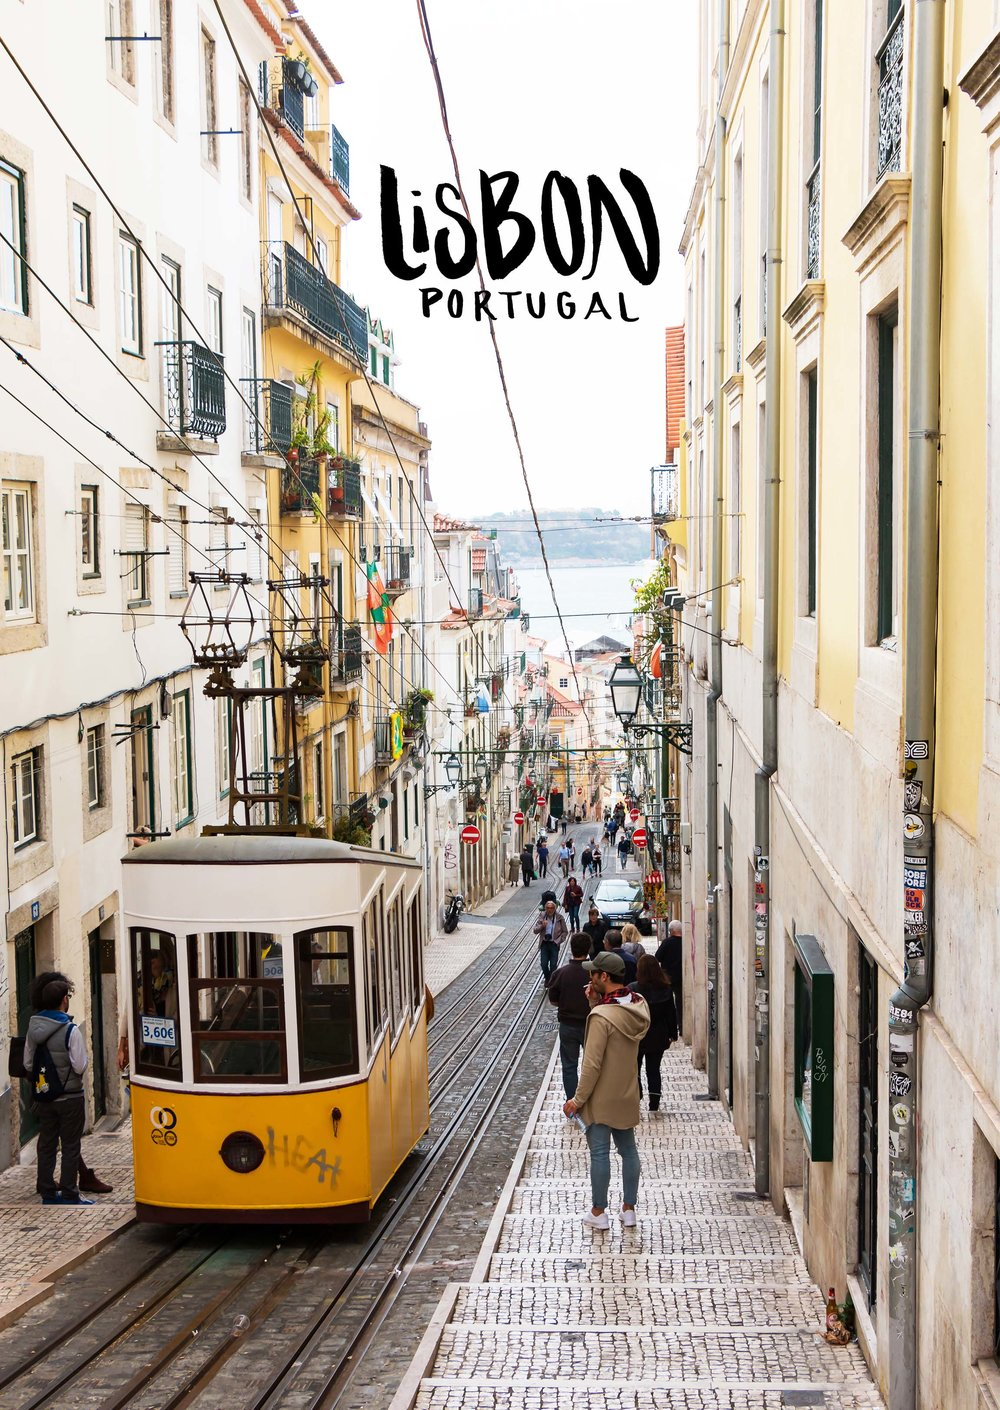 Lisbon, Portugal | 2016 Sea of Atlas Travel Recap